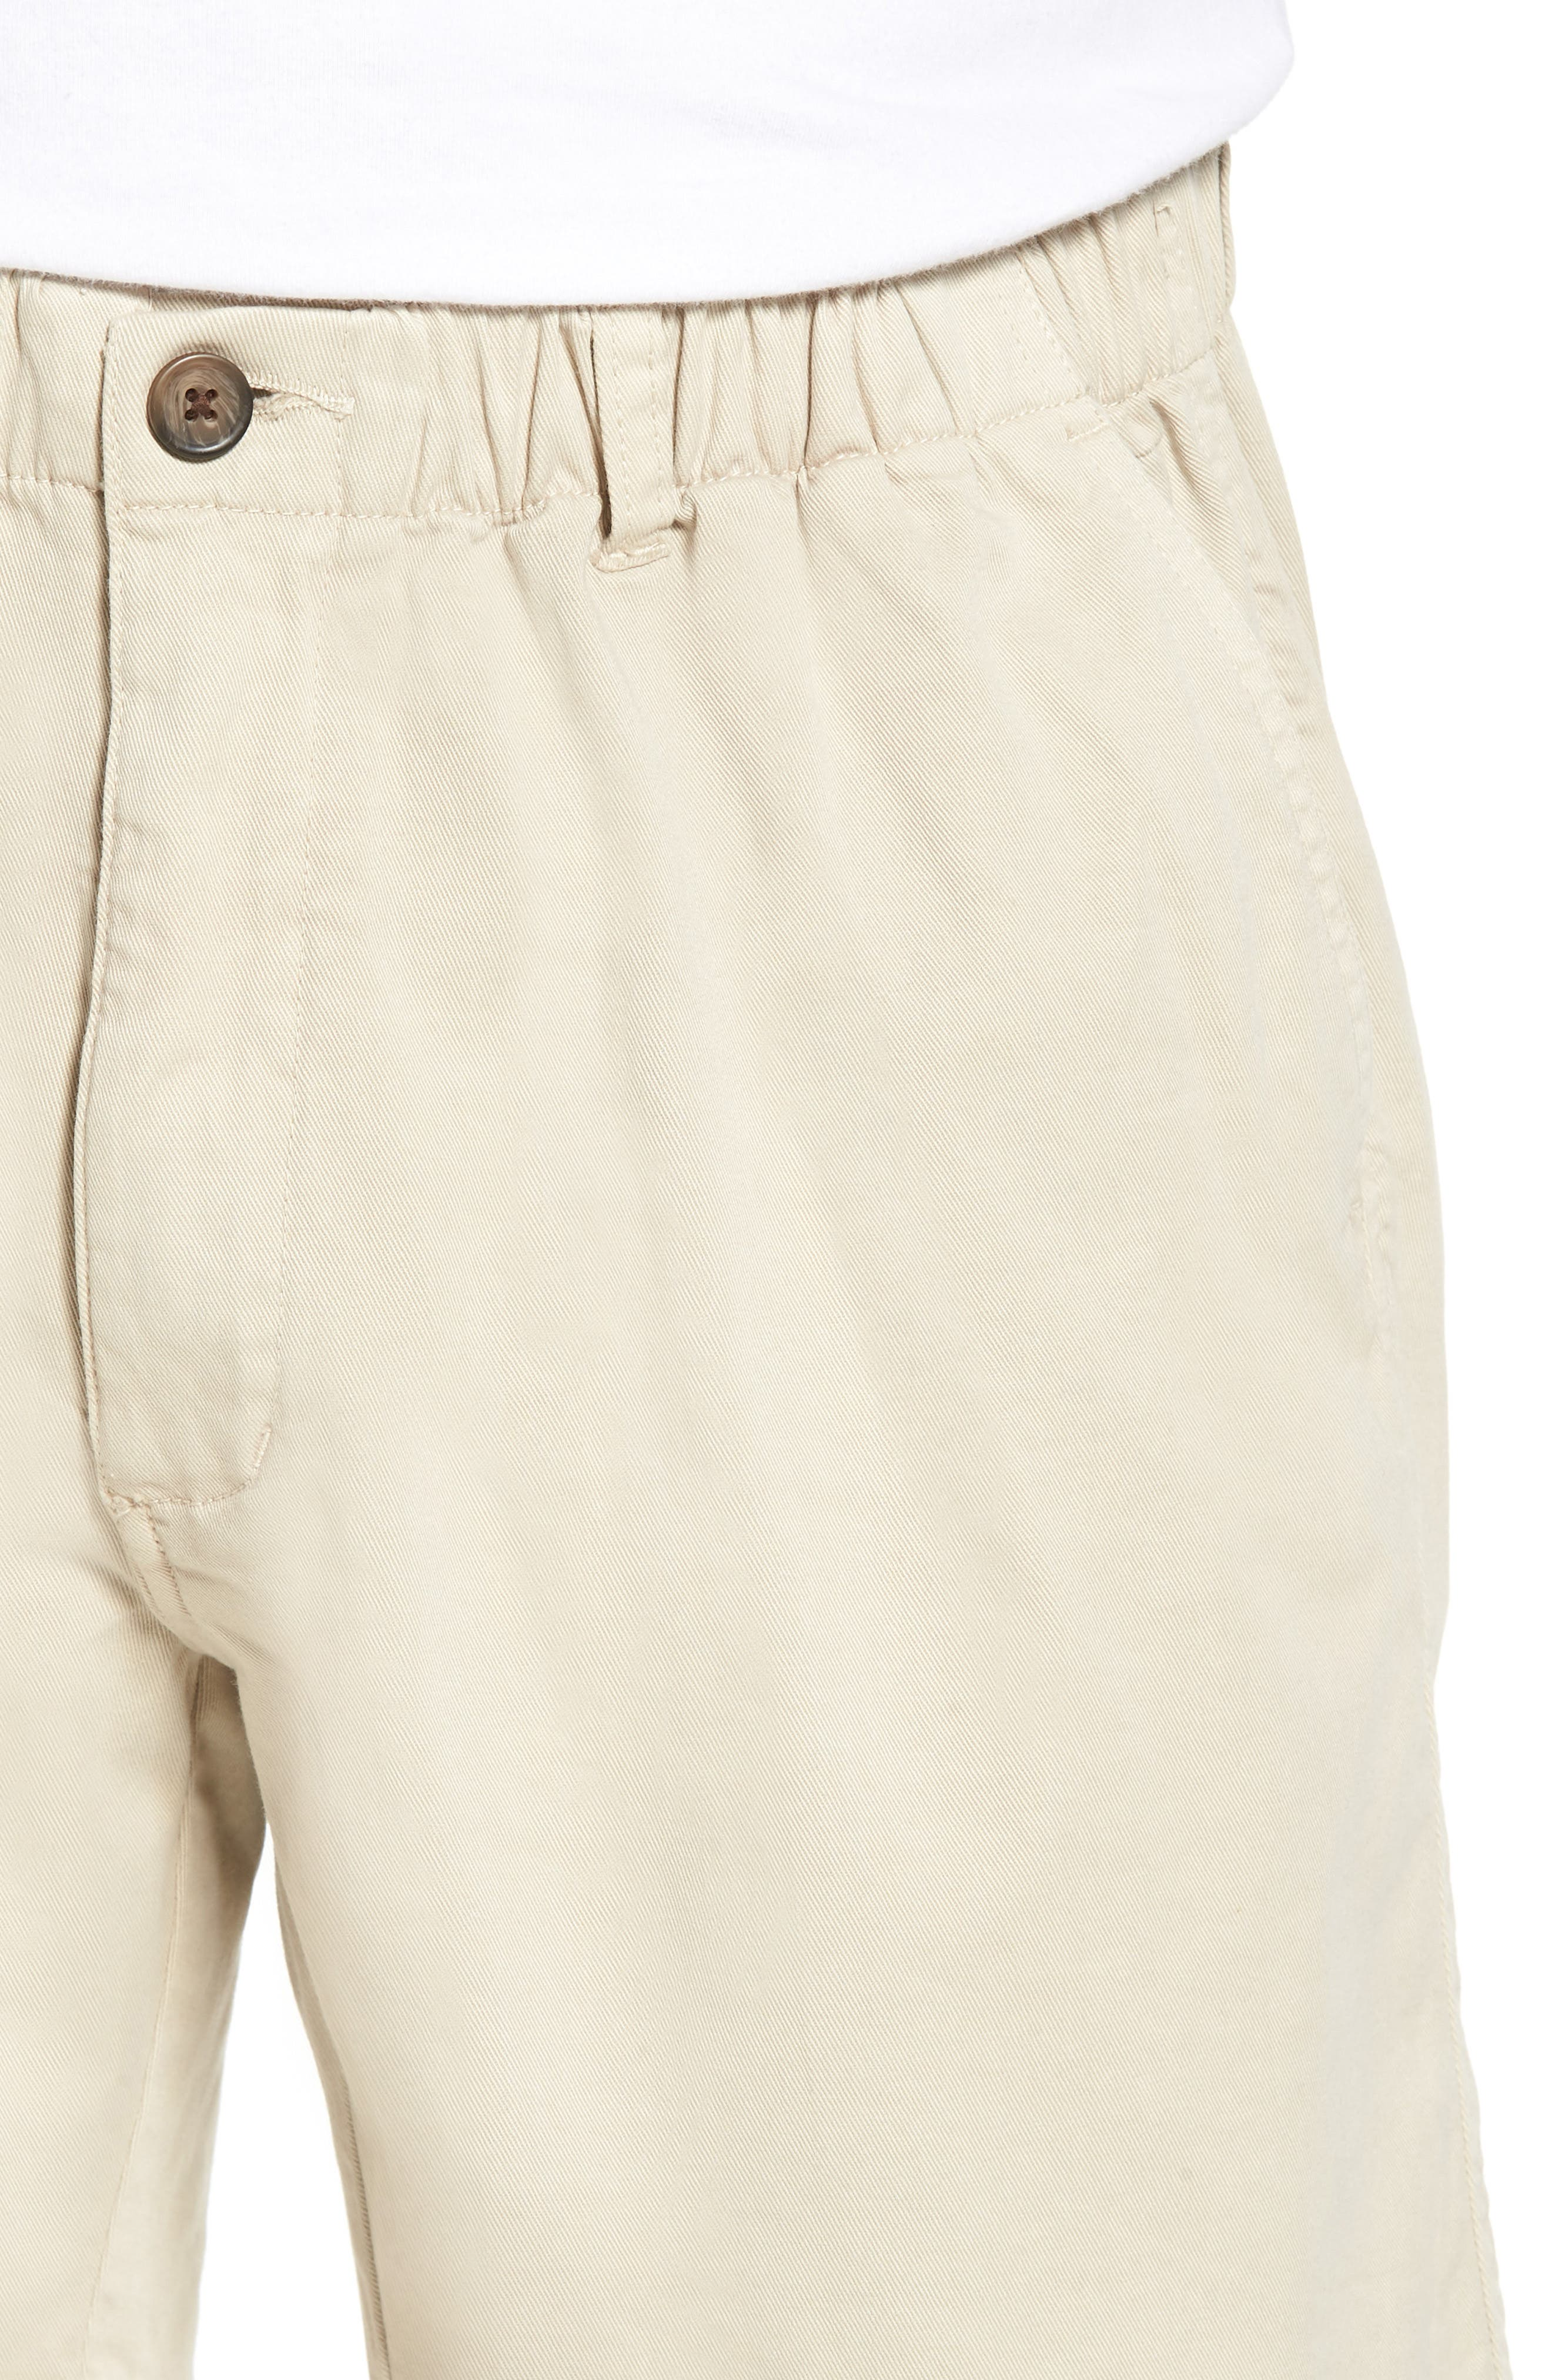 7in Snappers Elastic Waist Shorts,                             Alternate thumbnail 4, color,                             STONE